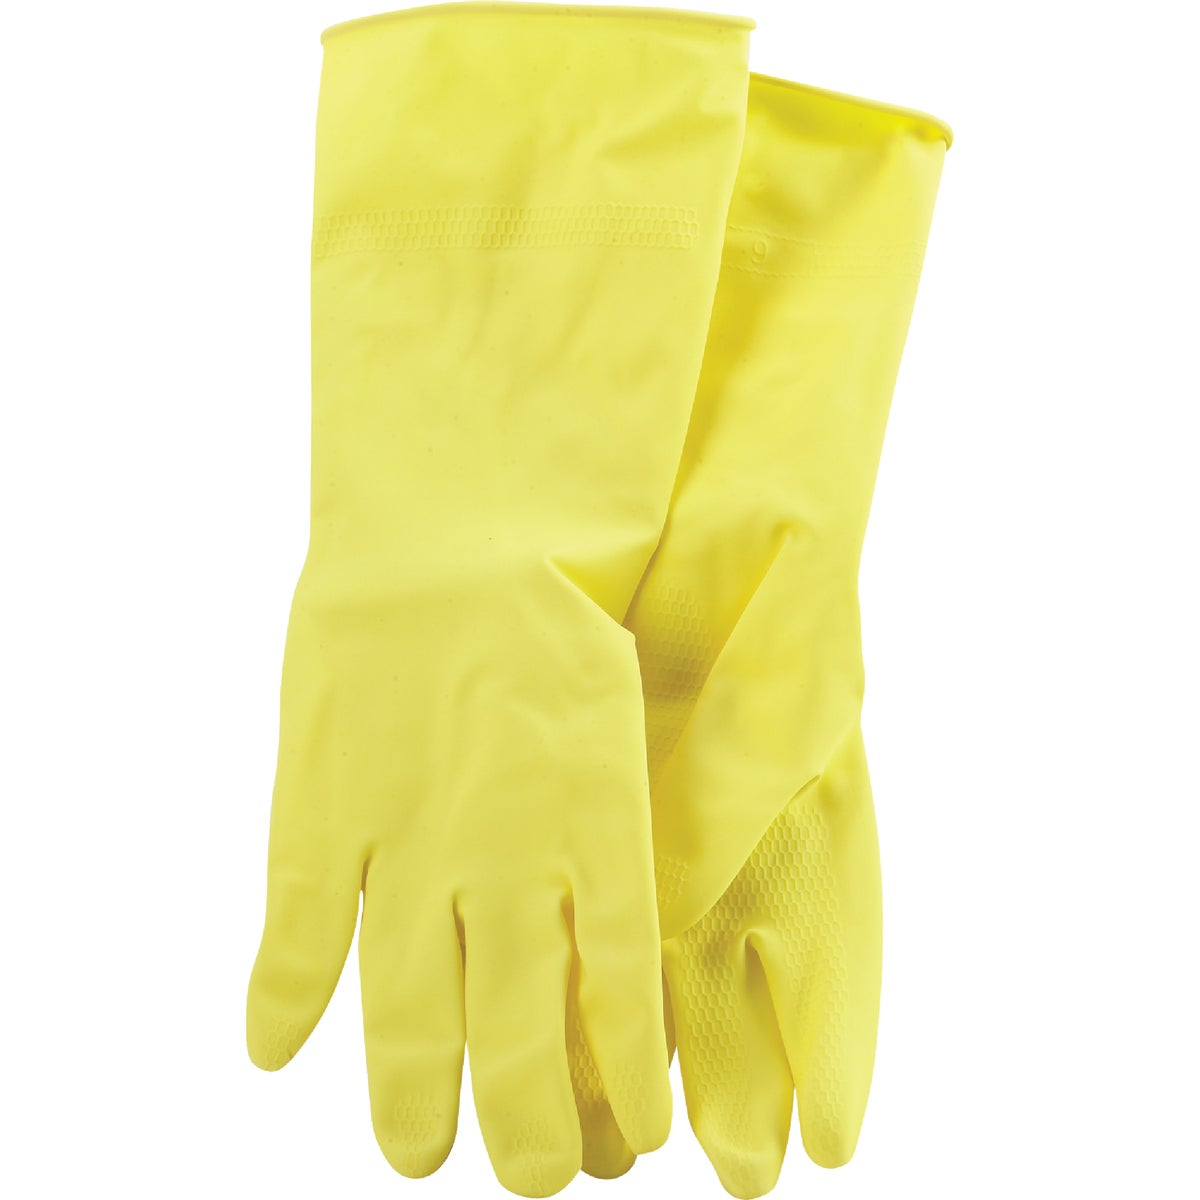 Do it Best Imports SMALL LATEX GLOVES 624818